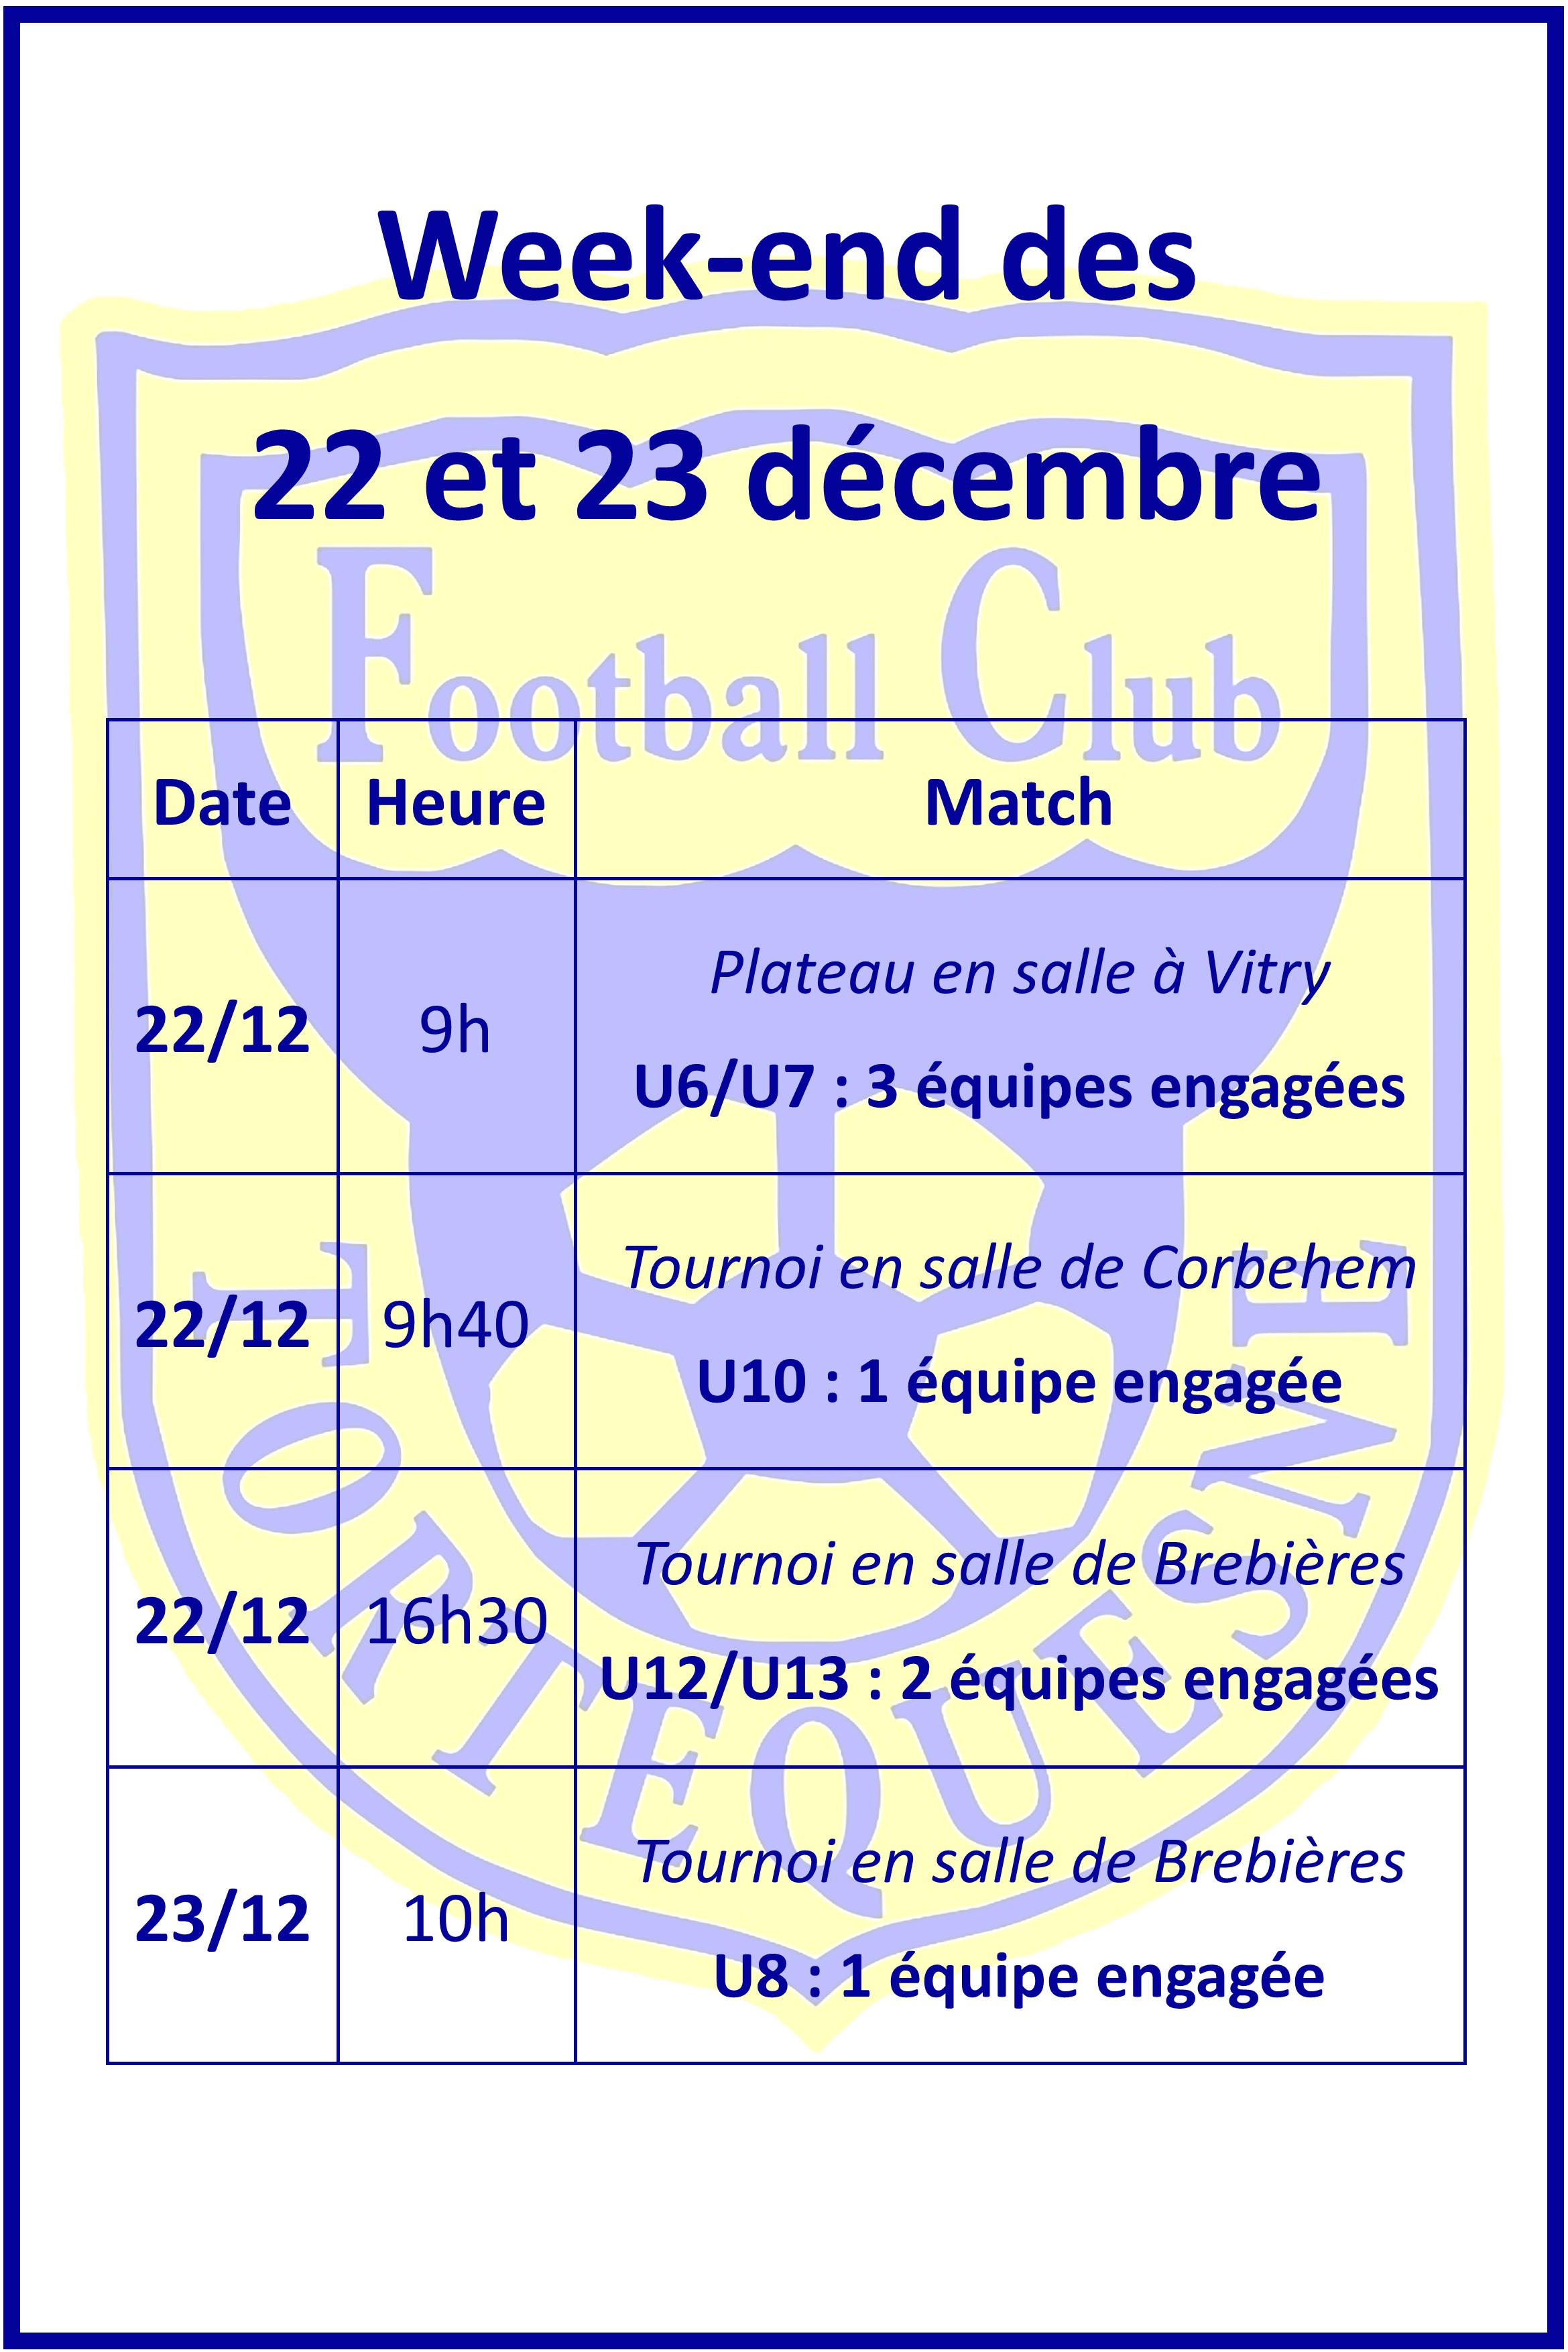 Actualite Joyeux Noel Club Football Fc Tortequesne Footeo